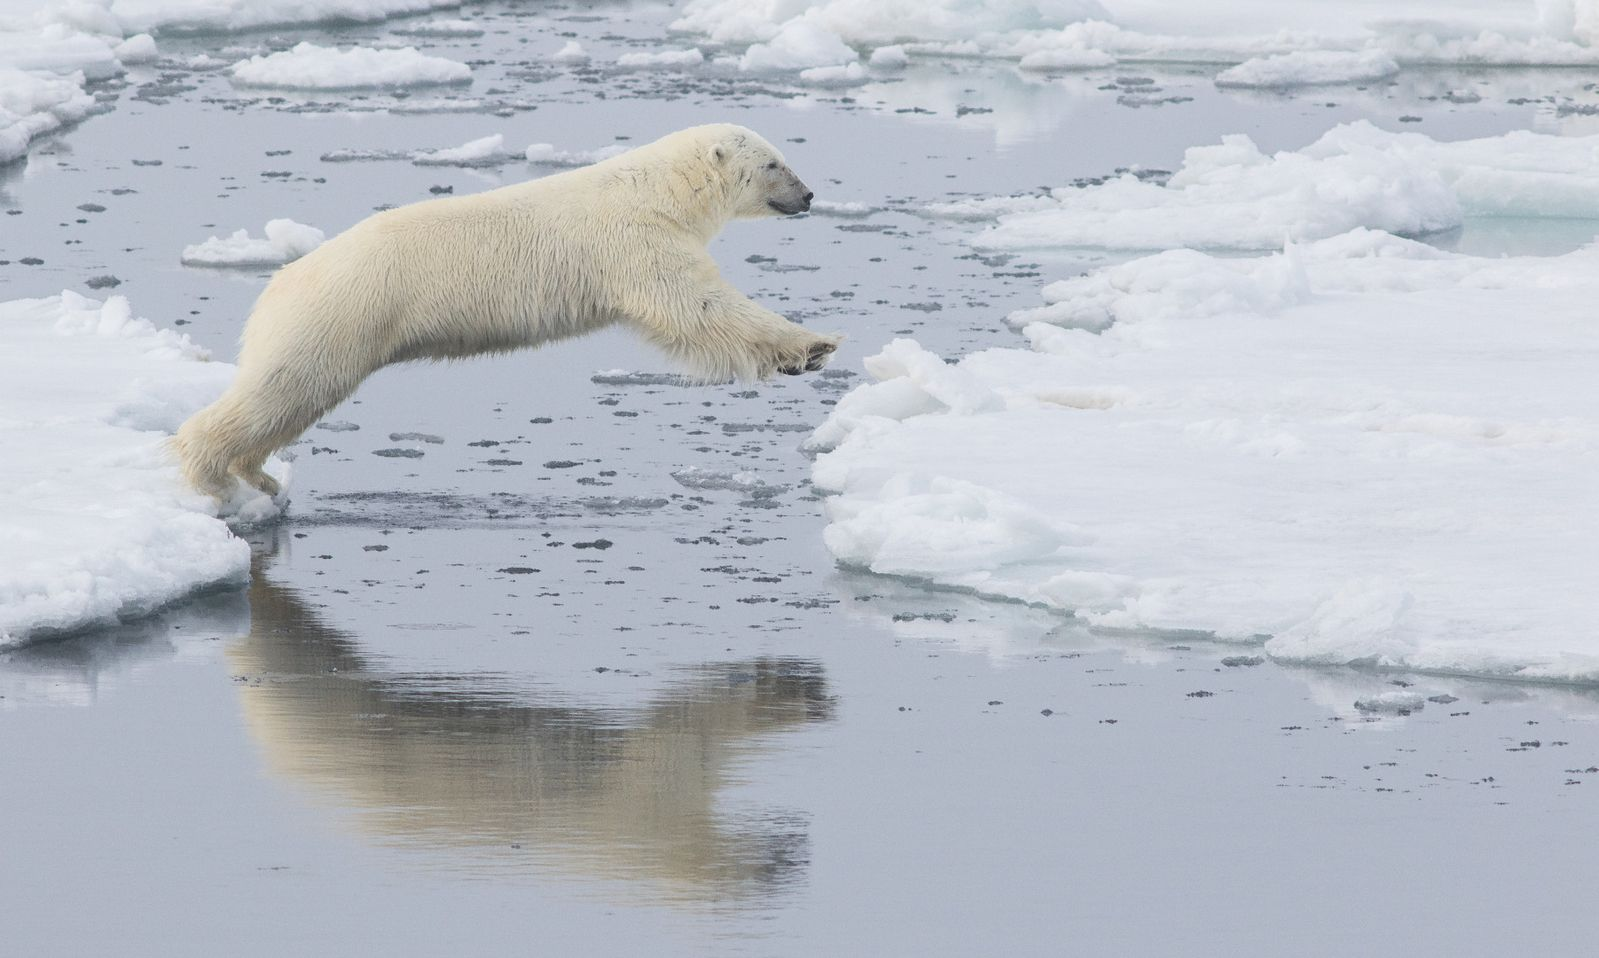 What Do You Think Will This Polar Bear Make It To The Other Side Without Falling In The Water Polar Bear Bear Polar